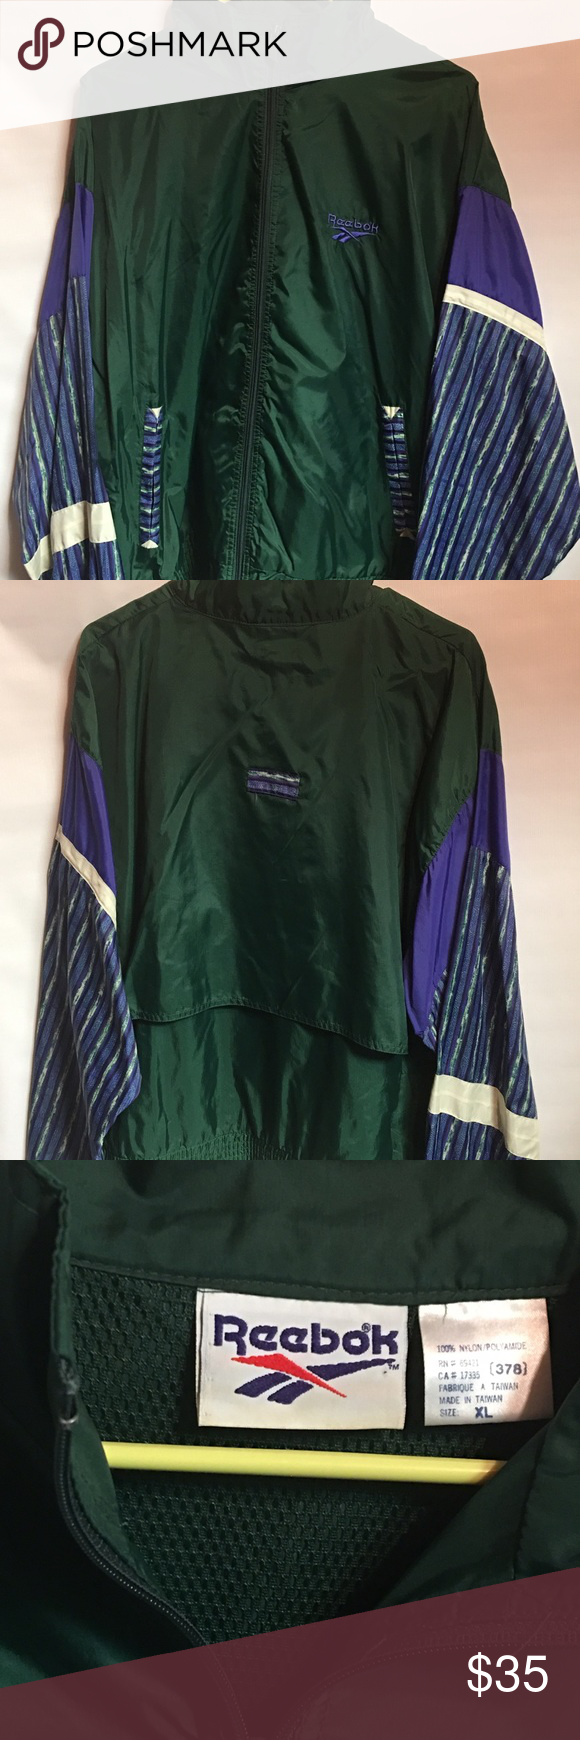 Vintage 90's Reebok Windbreaker Jacket Gently worn Vintage 90's Windbreaker Jacket. This is a Men's XL. Such a great color scheme. No flaws with this one. reebok Jackets & Coats Windbreakers